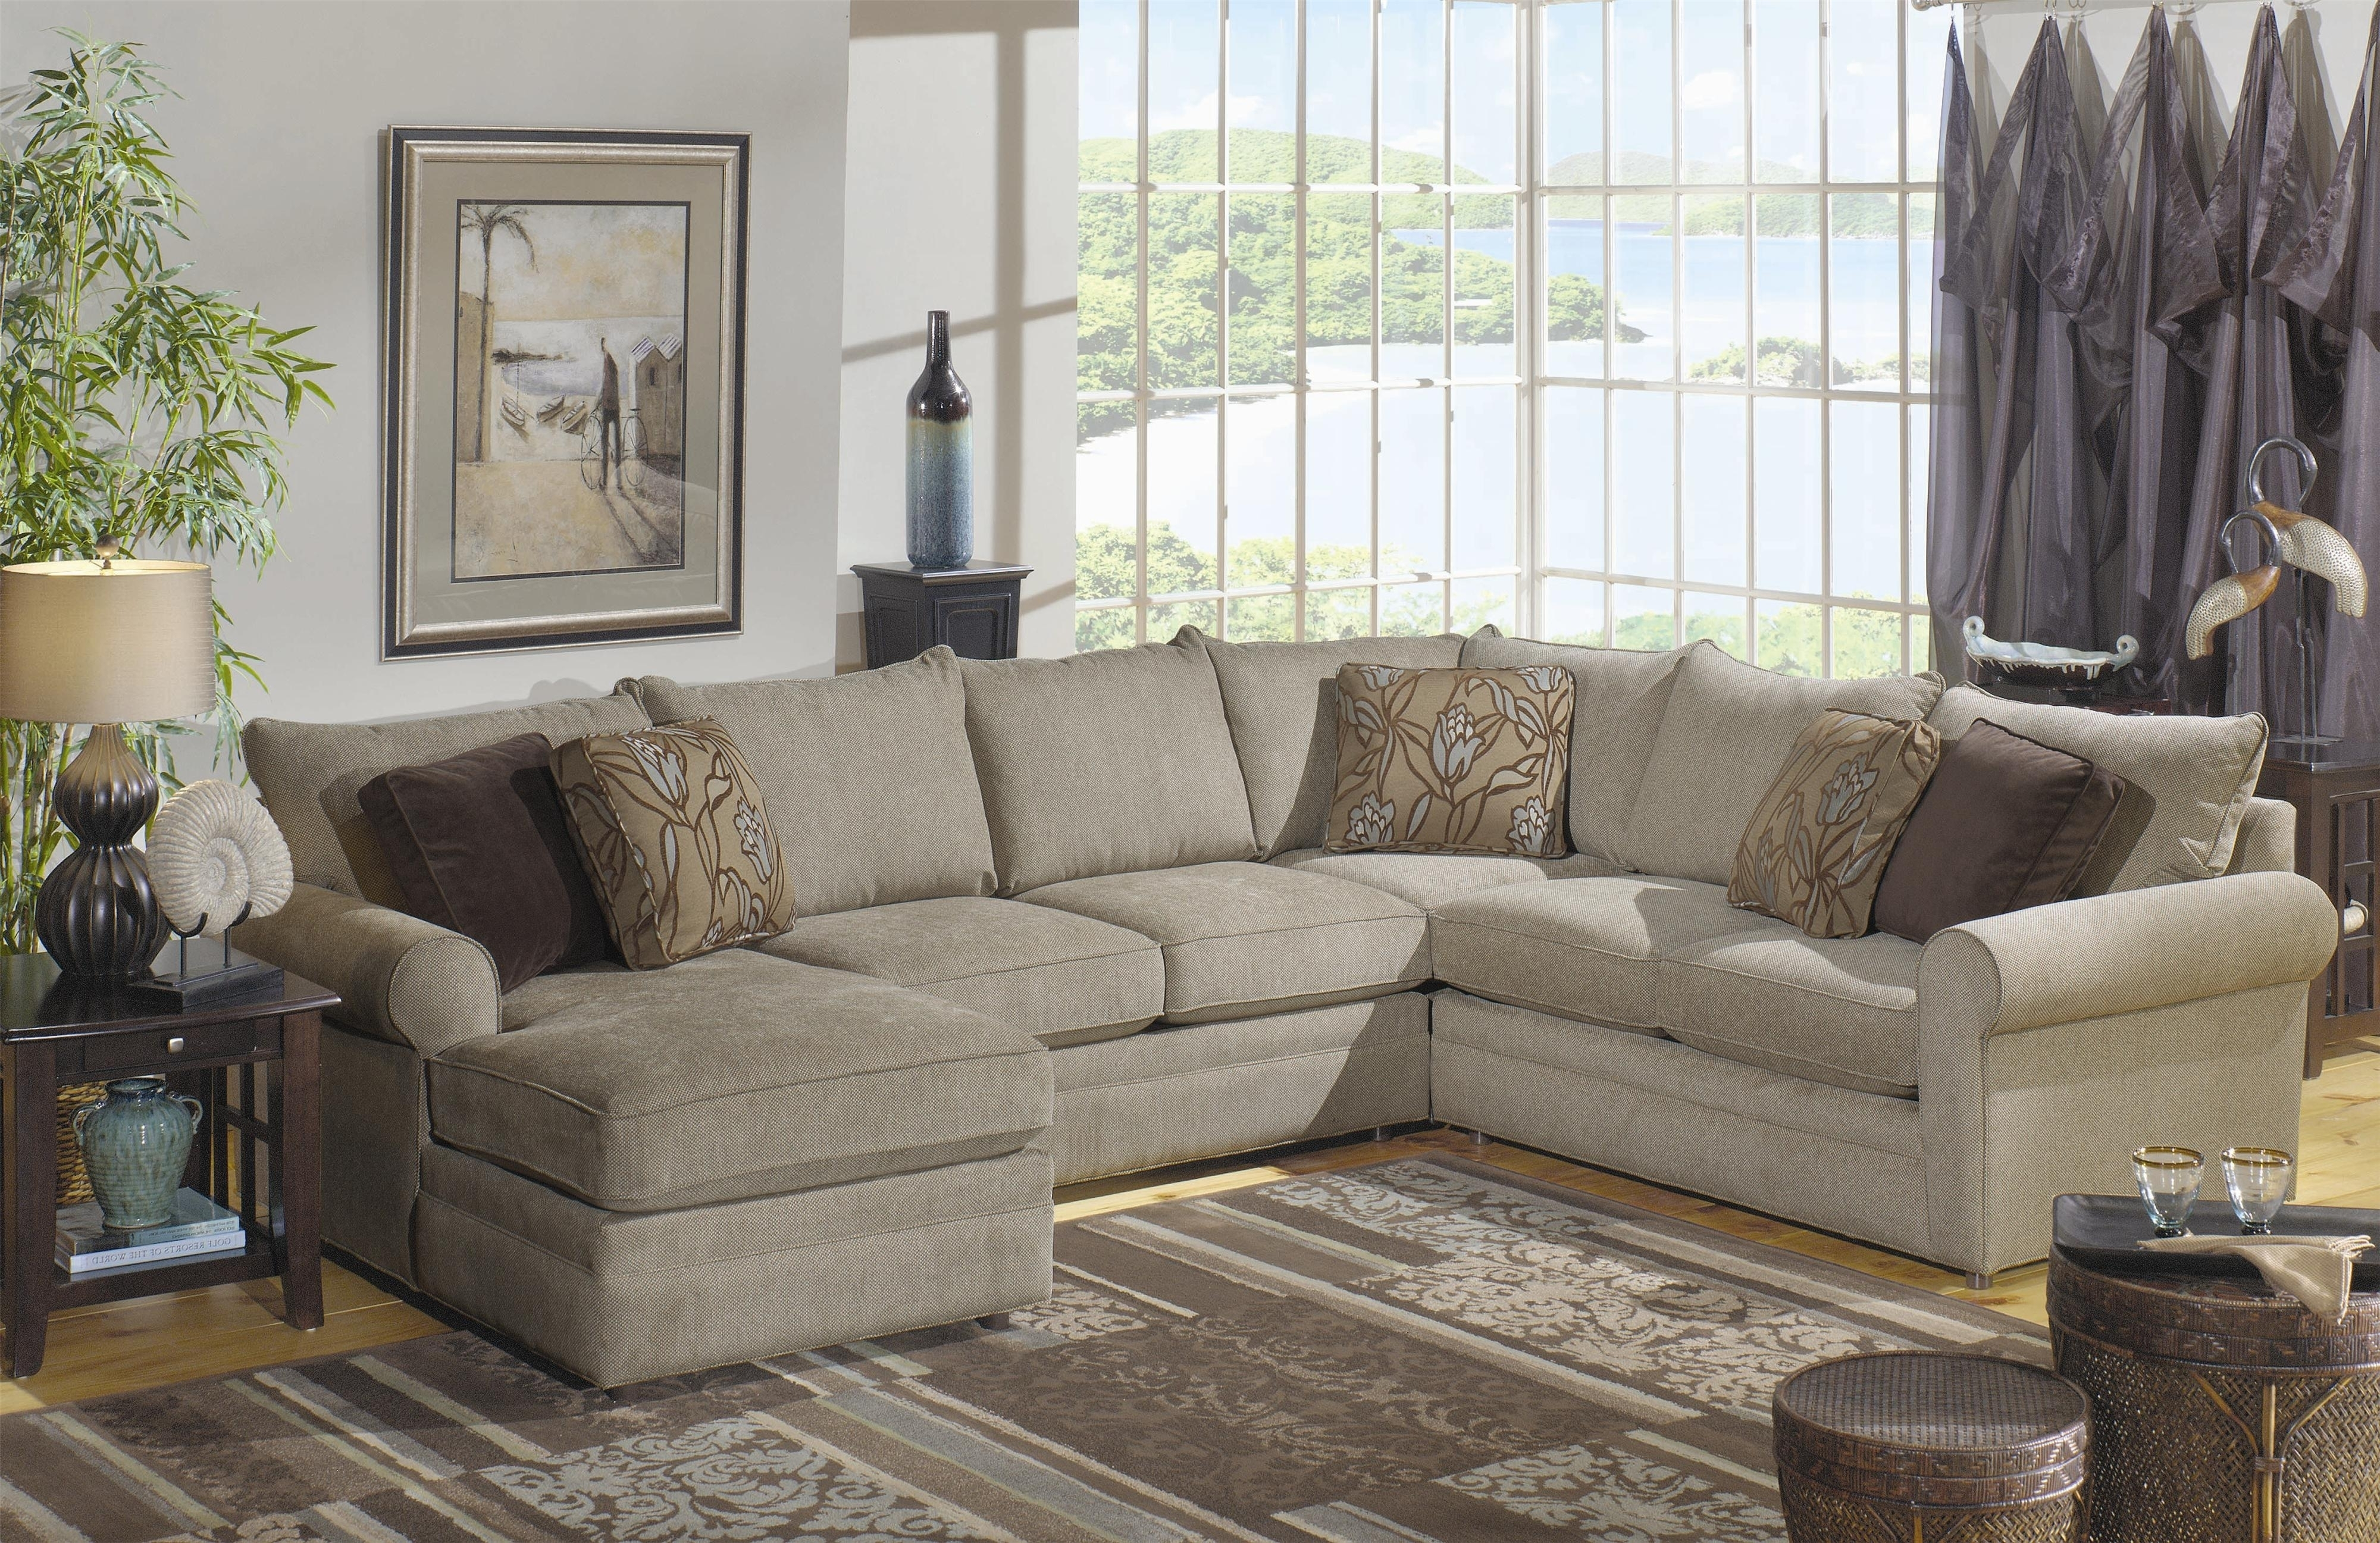 Featured Image of Craftsman Sectional Sofas